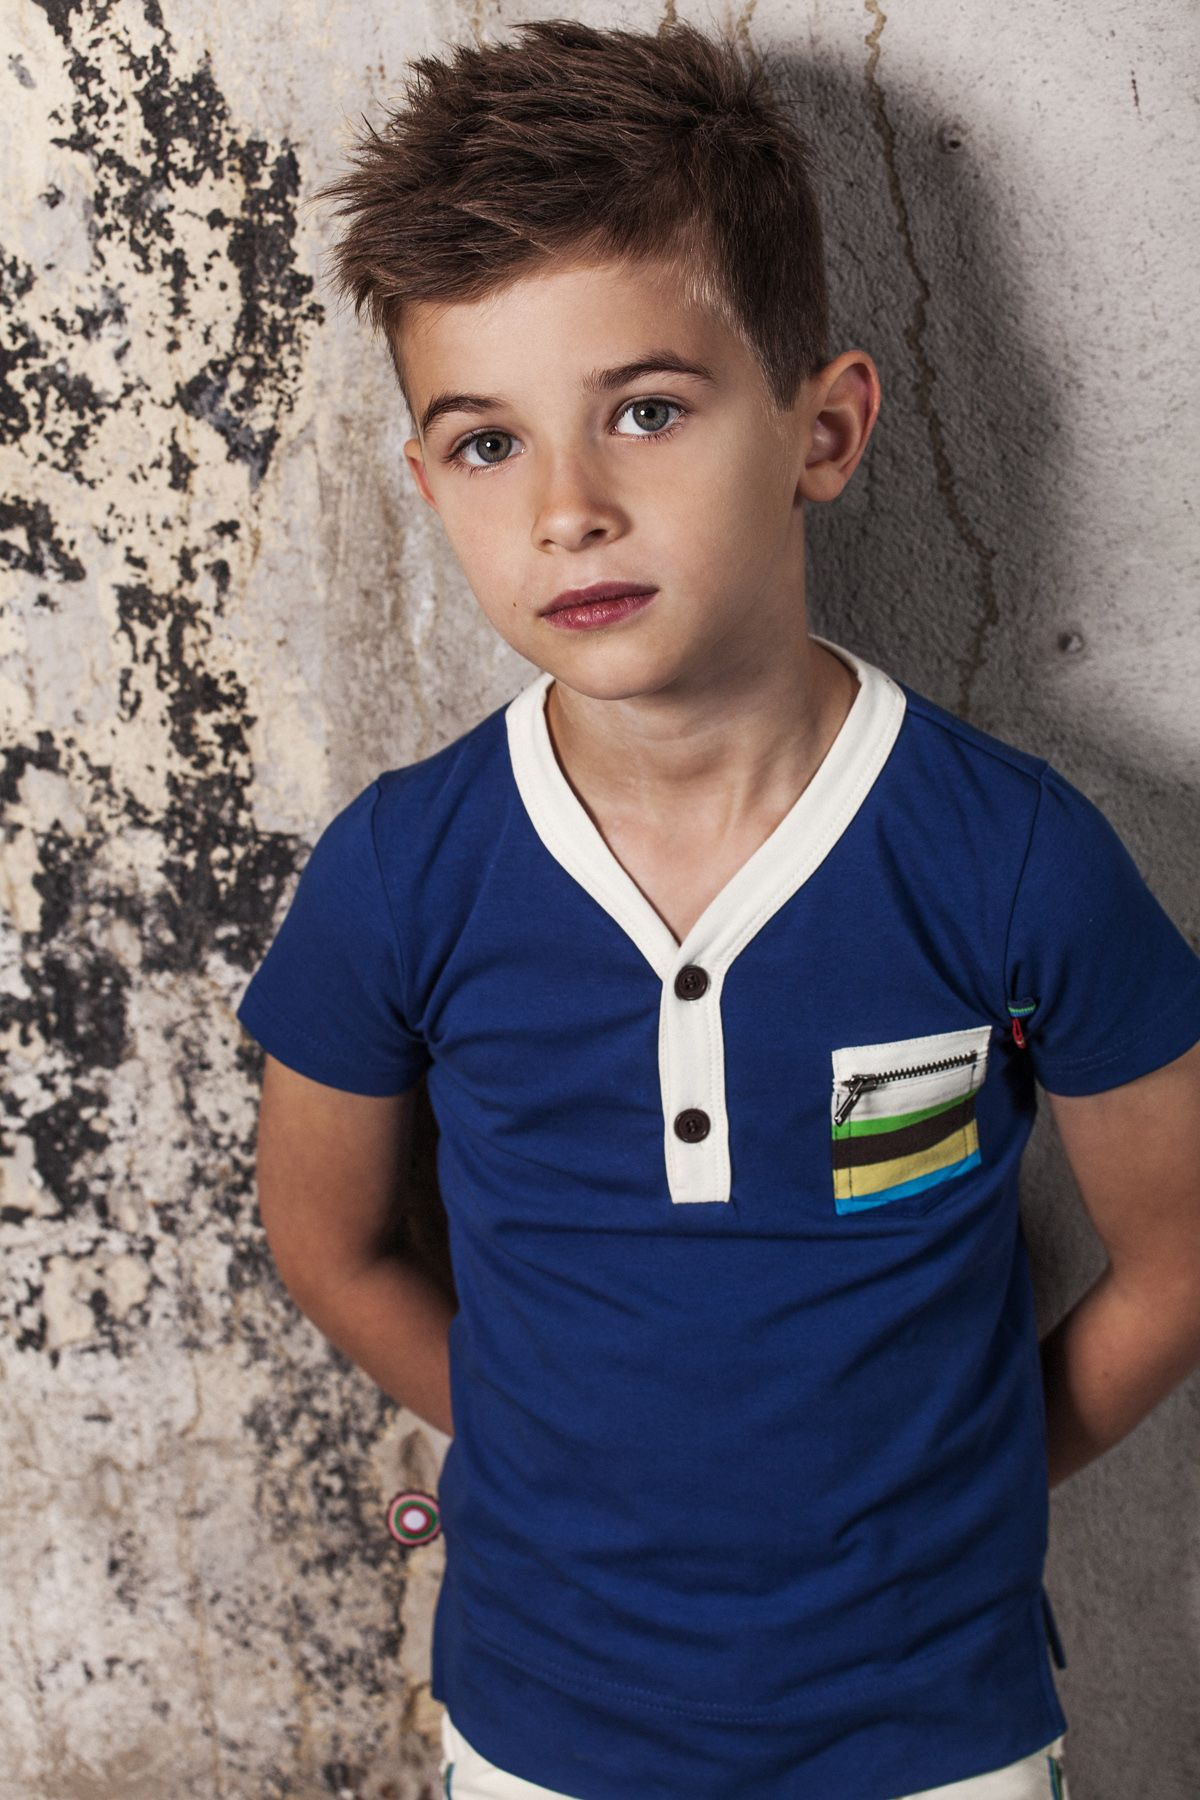 43 Trendy and Cute Boys Hairstyles for 2018 Kids